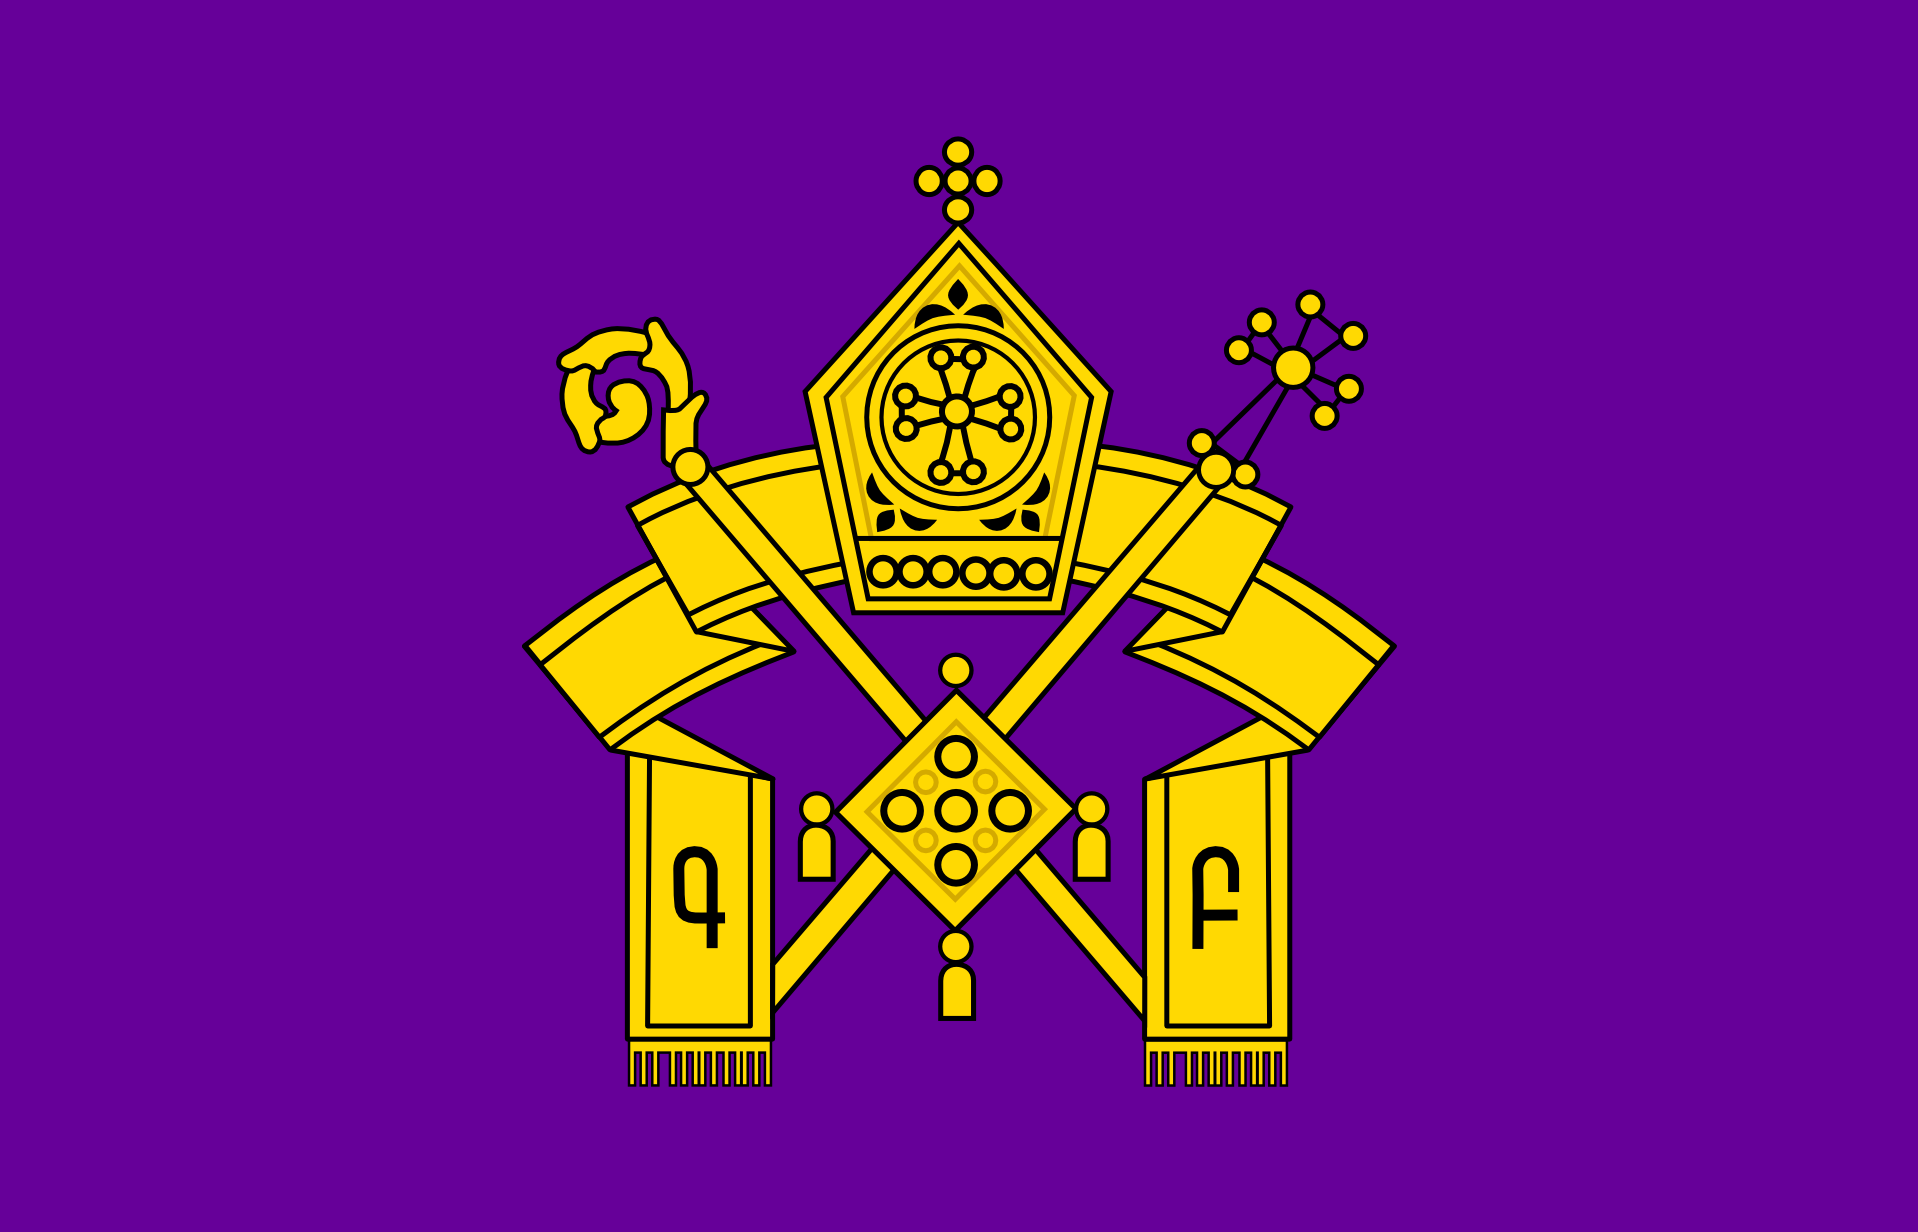 https://upload.wikimedia.org/wikipedia/commons/c/c3/Armenian_Apostolic_Church_logo.png